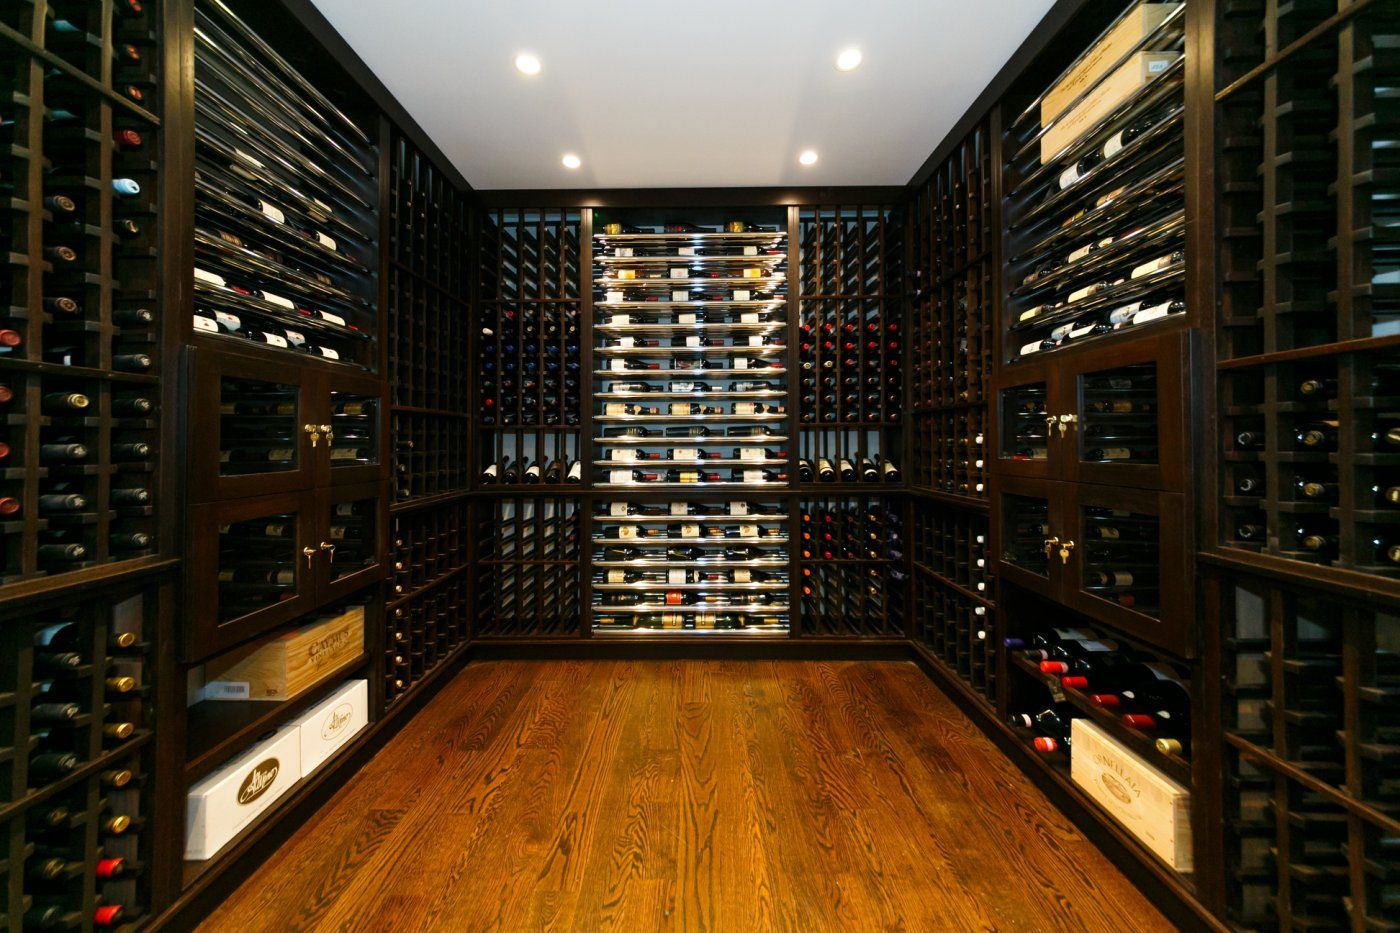 Modern Interior Home Wine Room Design Ideas With U Shaped Arrangement  Elegant Black Wood Wine Wall Cabinet Furniture And Beautiful Small Rounded  Ceiling ...